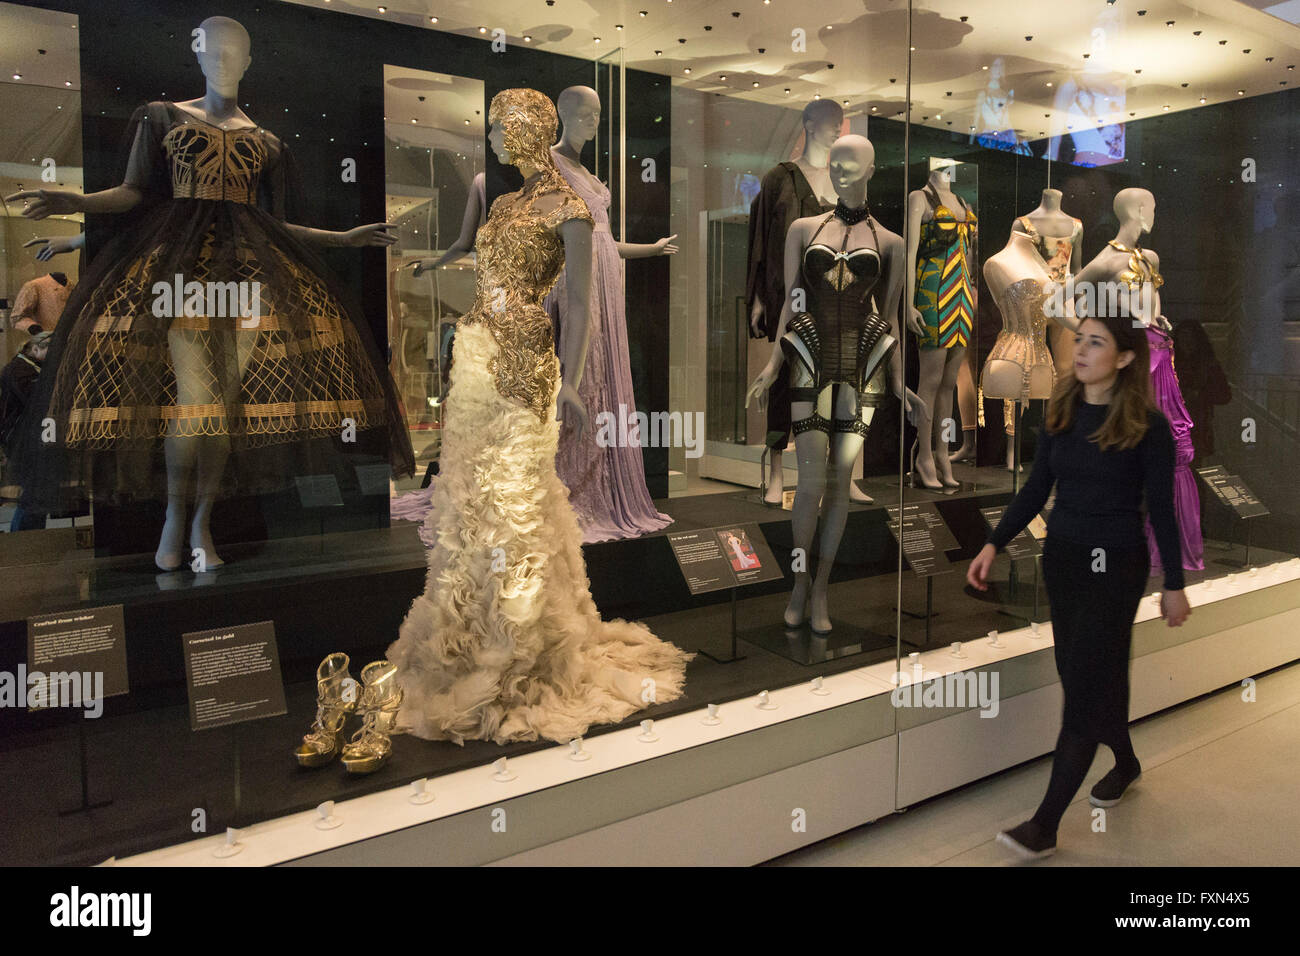 Undressed A Brief History Of Underwear Exhibition At The ...